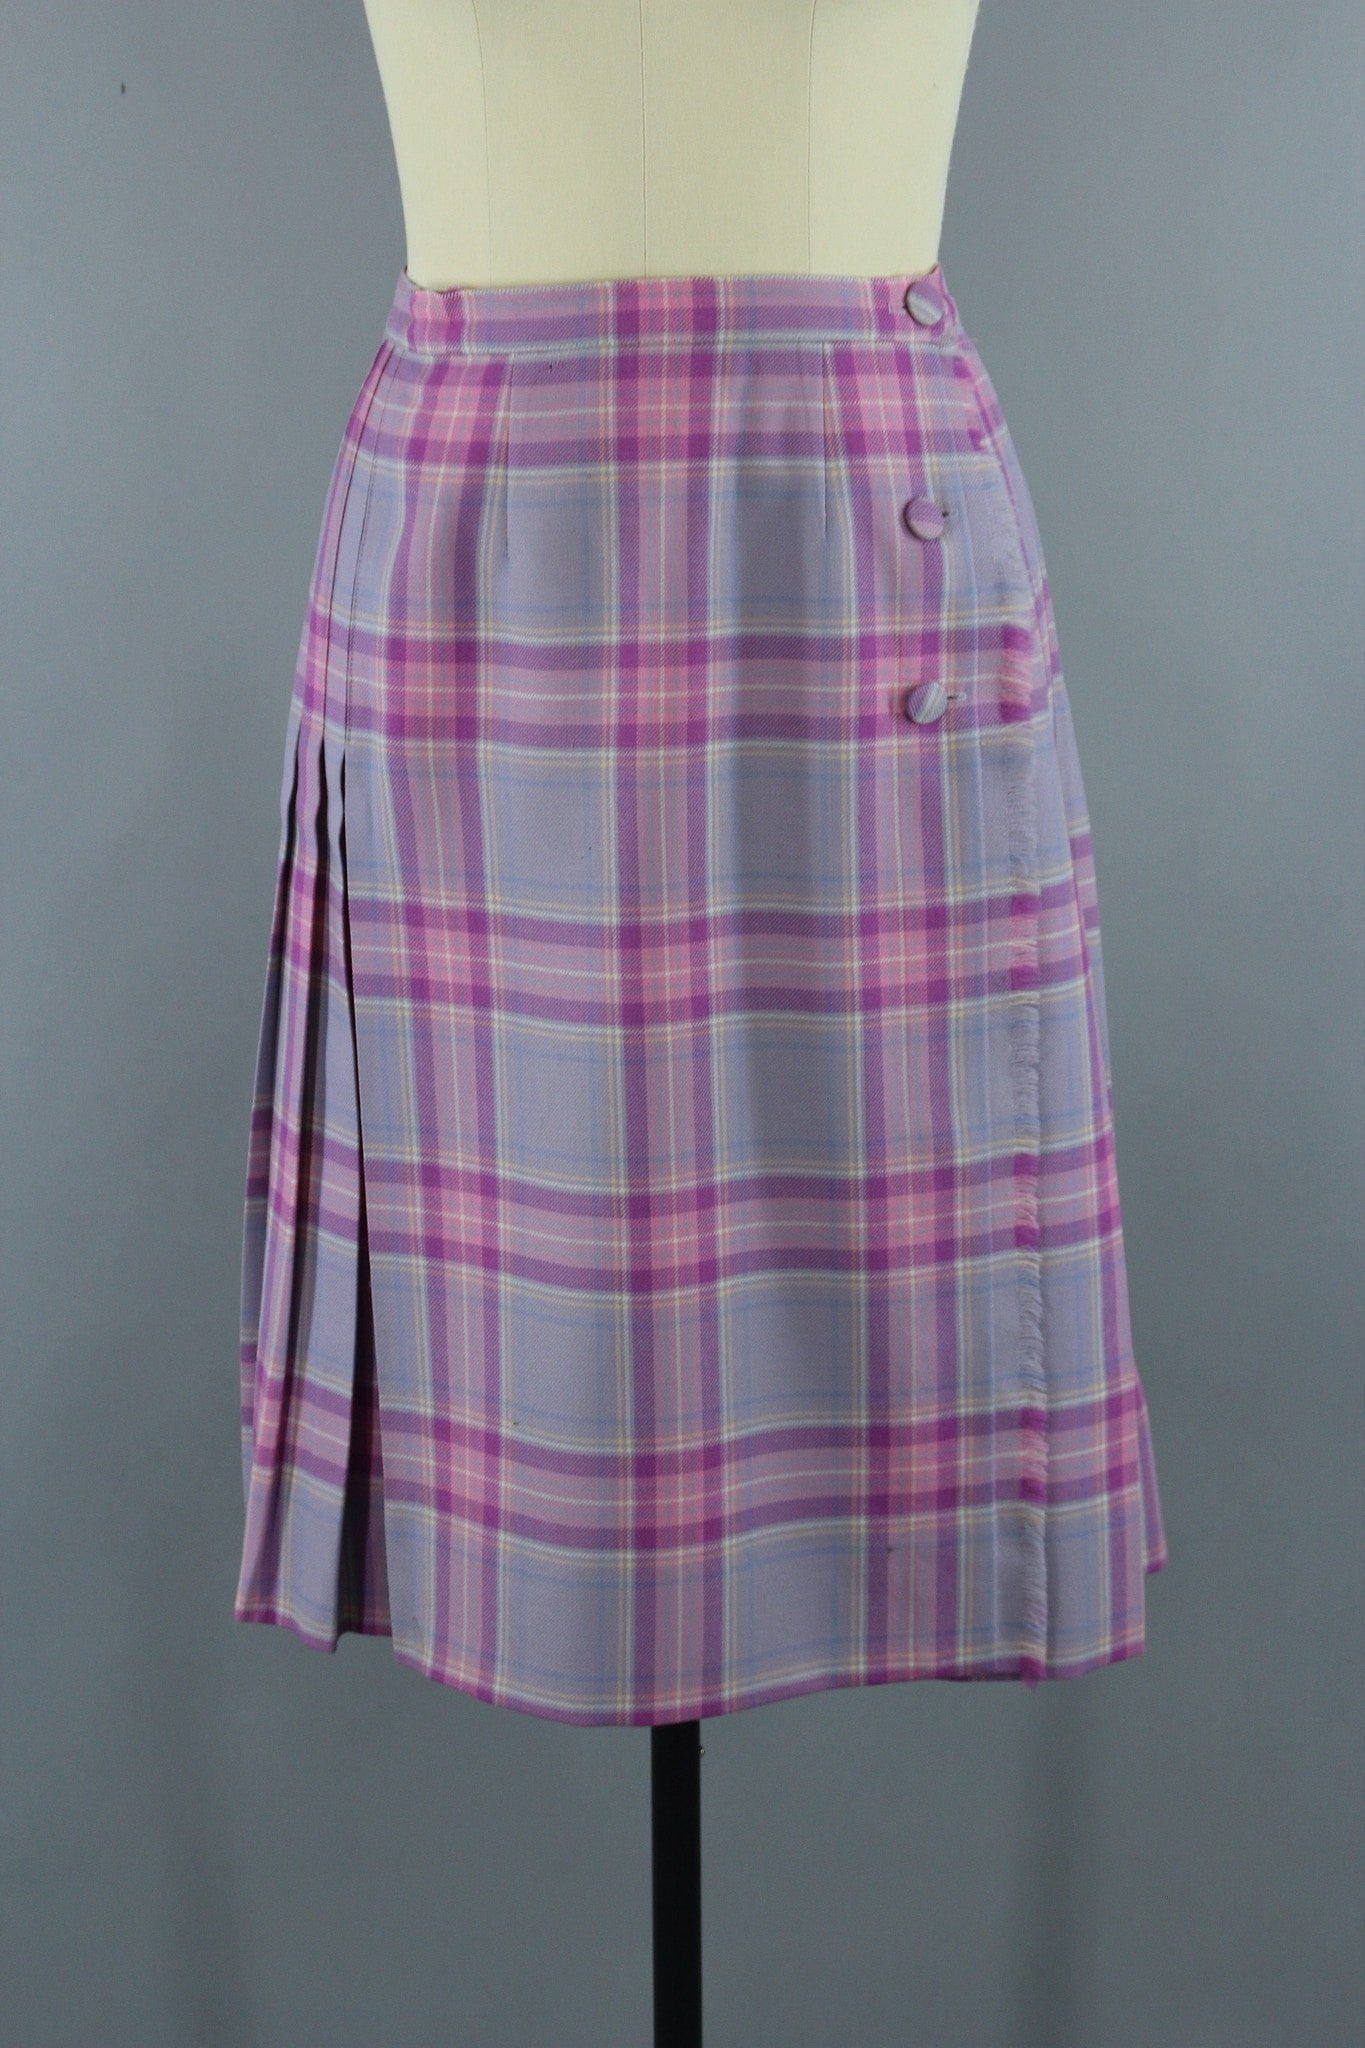 Vintage Lavender Pink Plaid Wool Kilt Skirt by Surrey Classics Bottoms ThisBlueBird